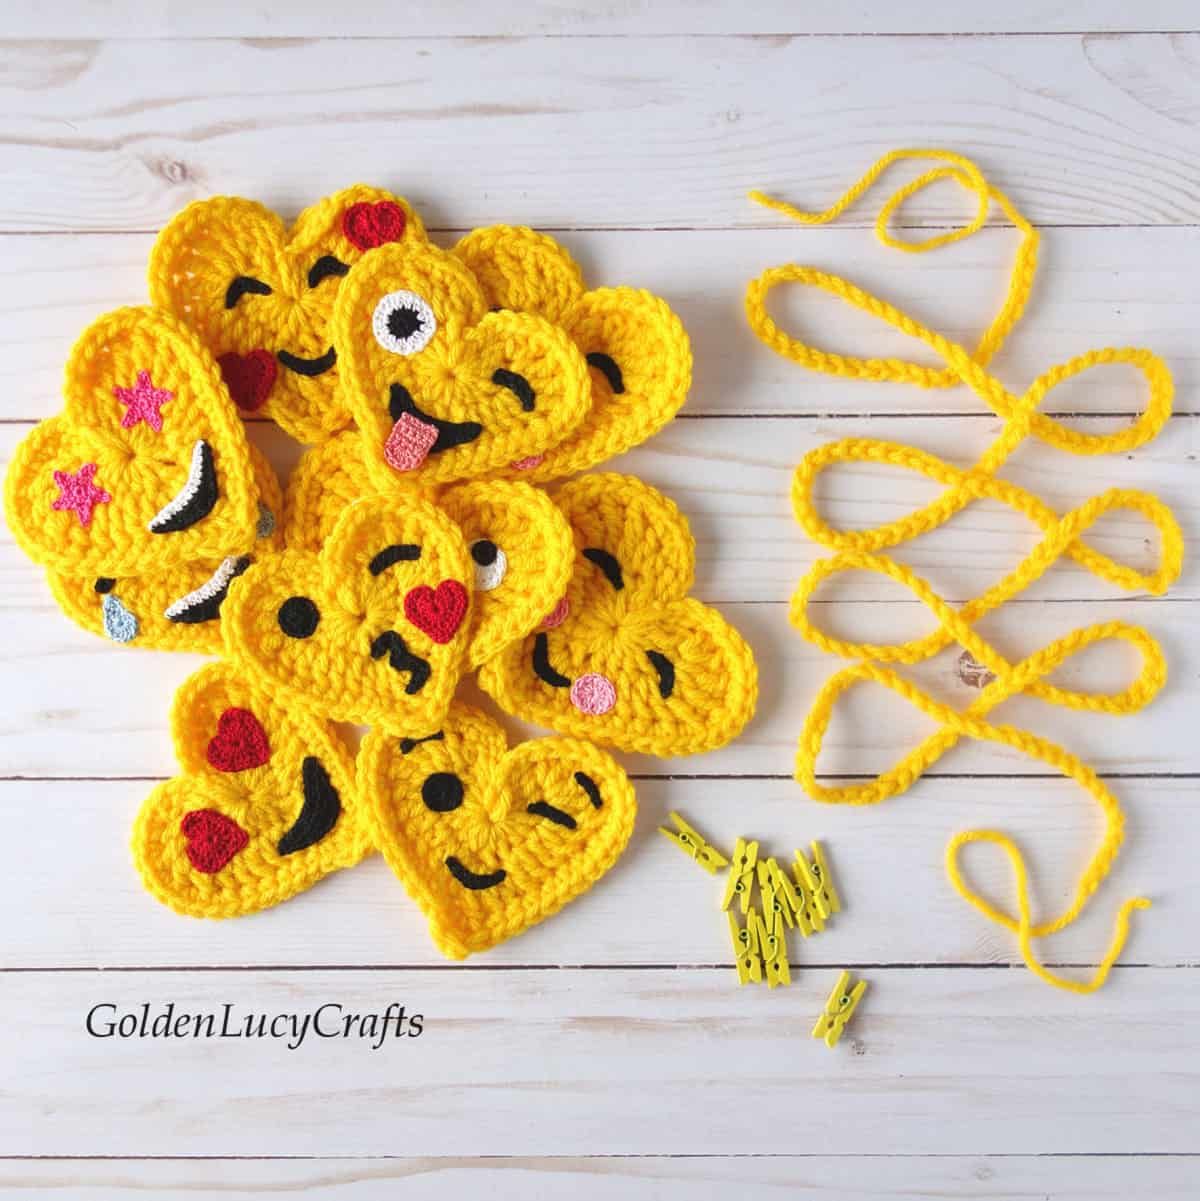 Crochet heart emojis, crocheted rope and small yellow craft clothespins.